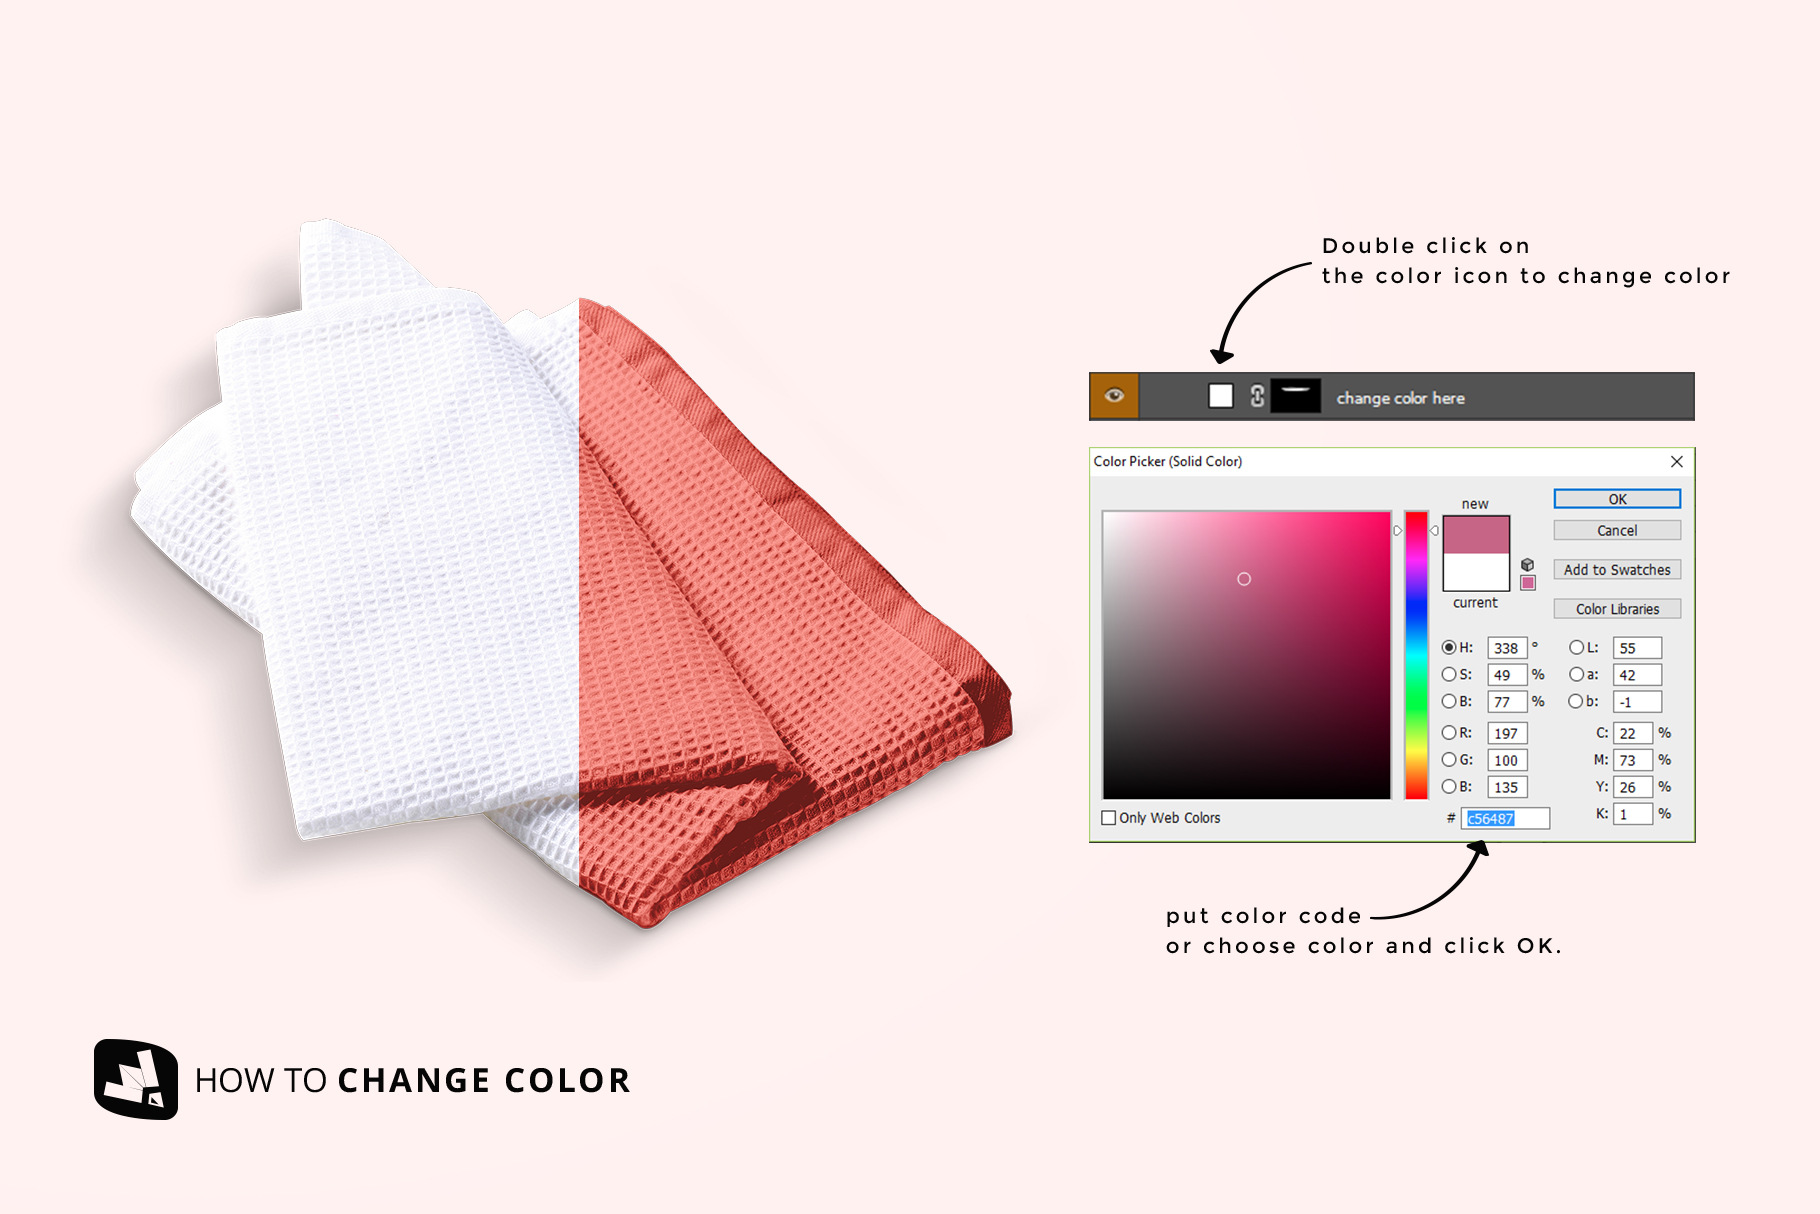 how to change color of the kitchen washcloth mockup